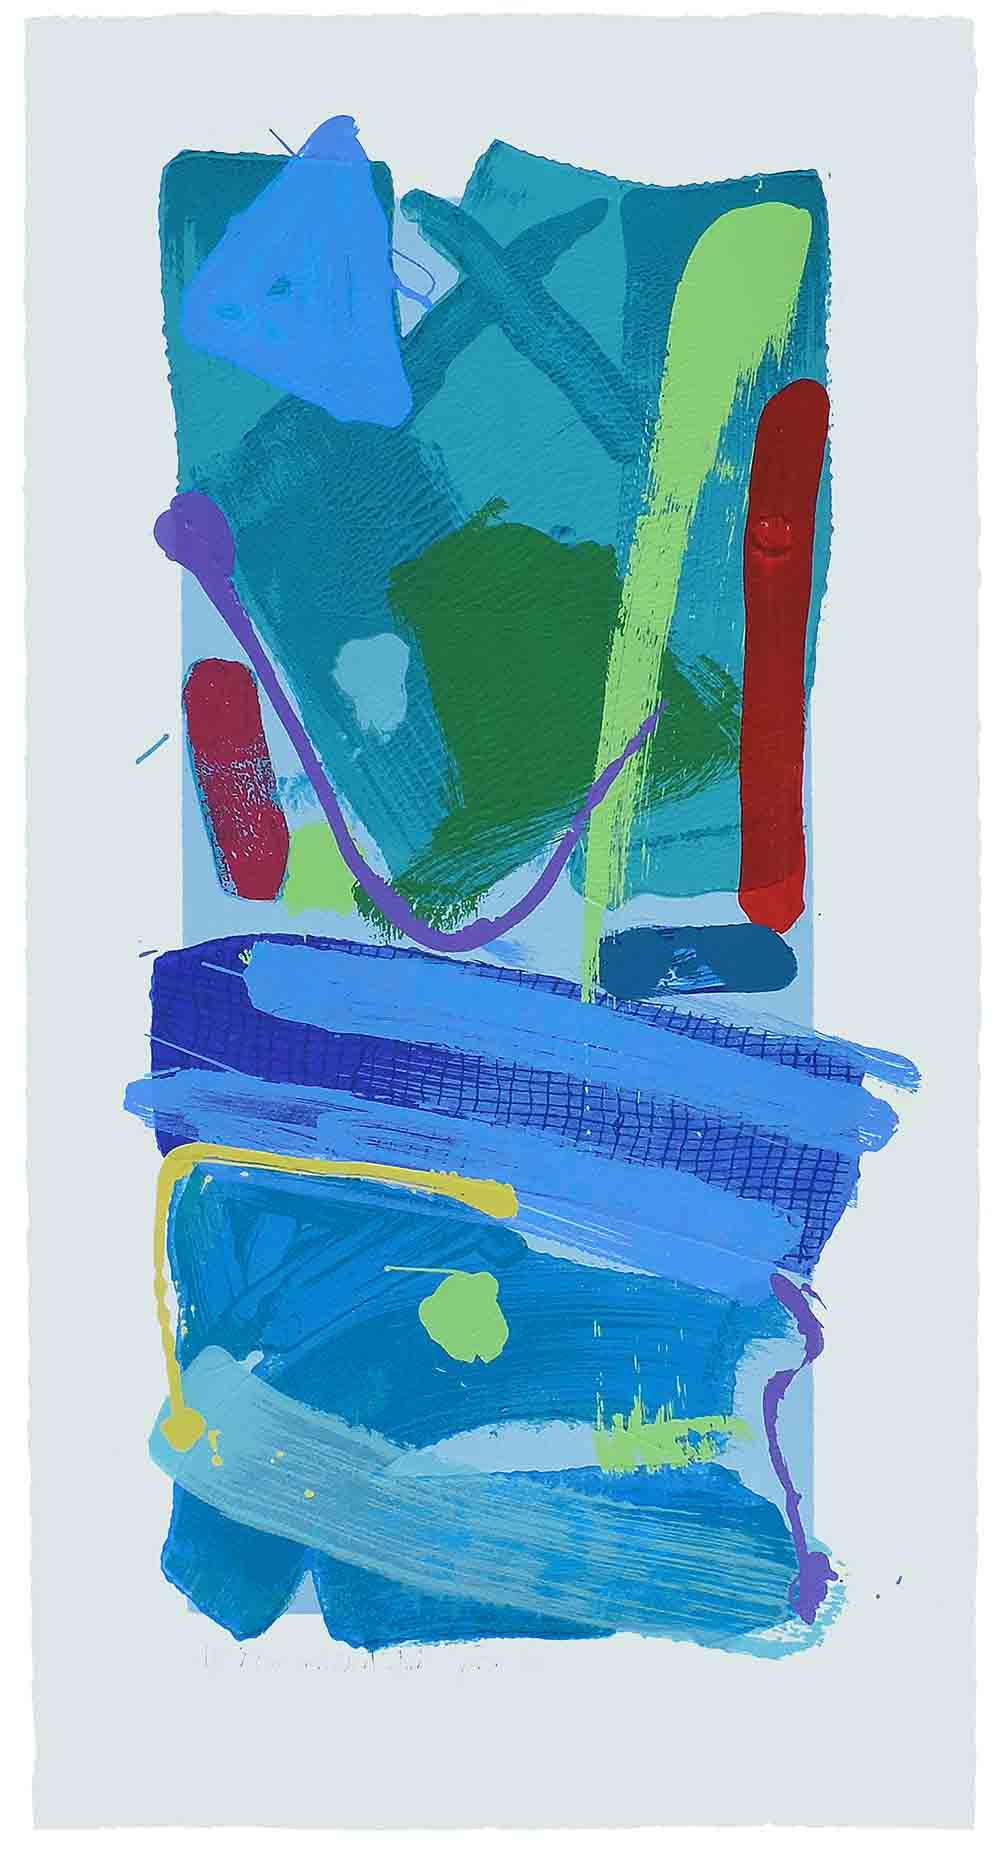 LOW Anthony Frost, Blue Crayola, 2016.jpg